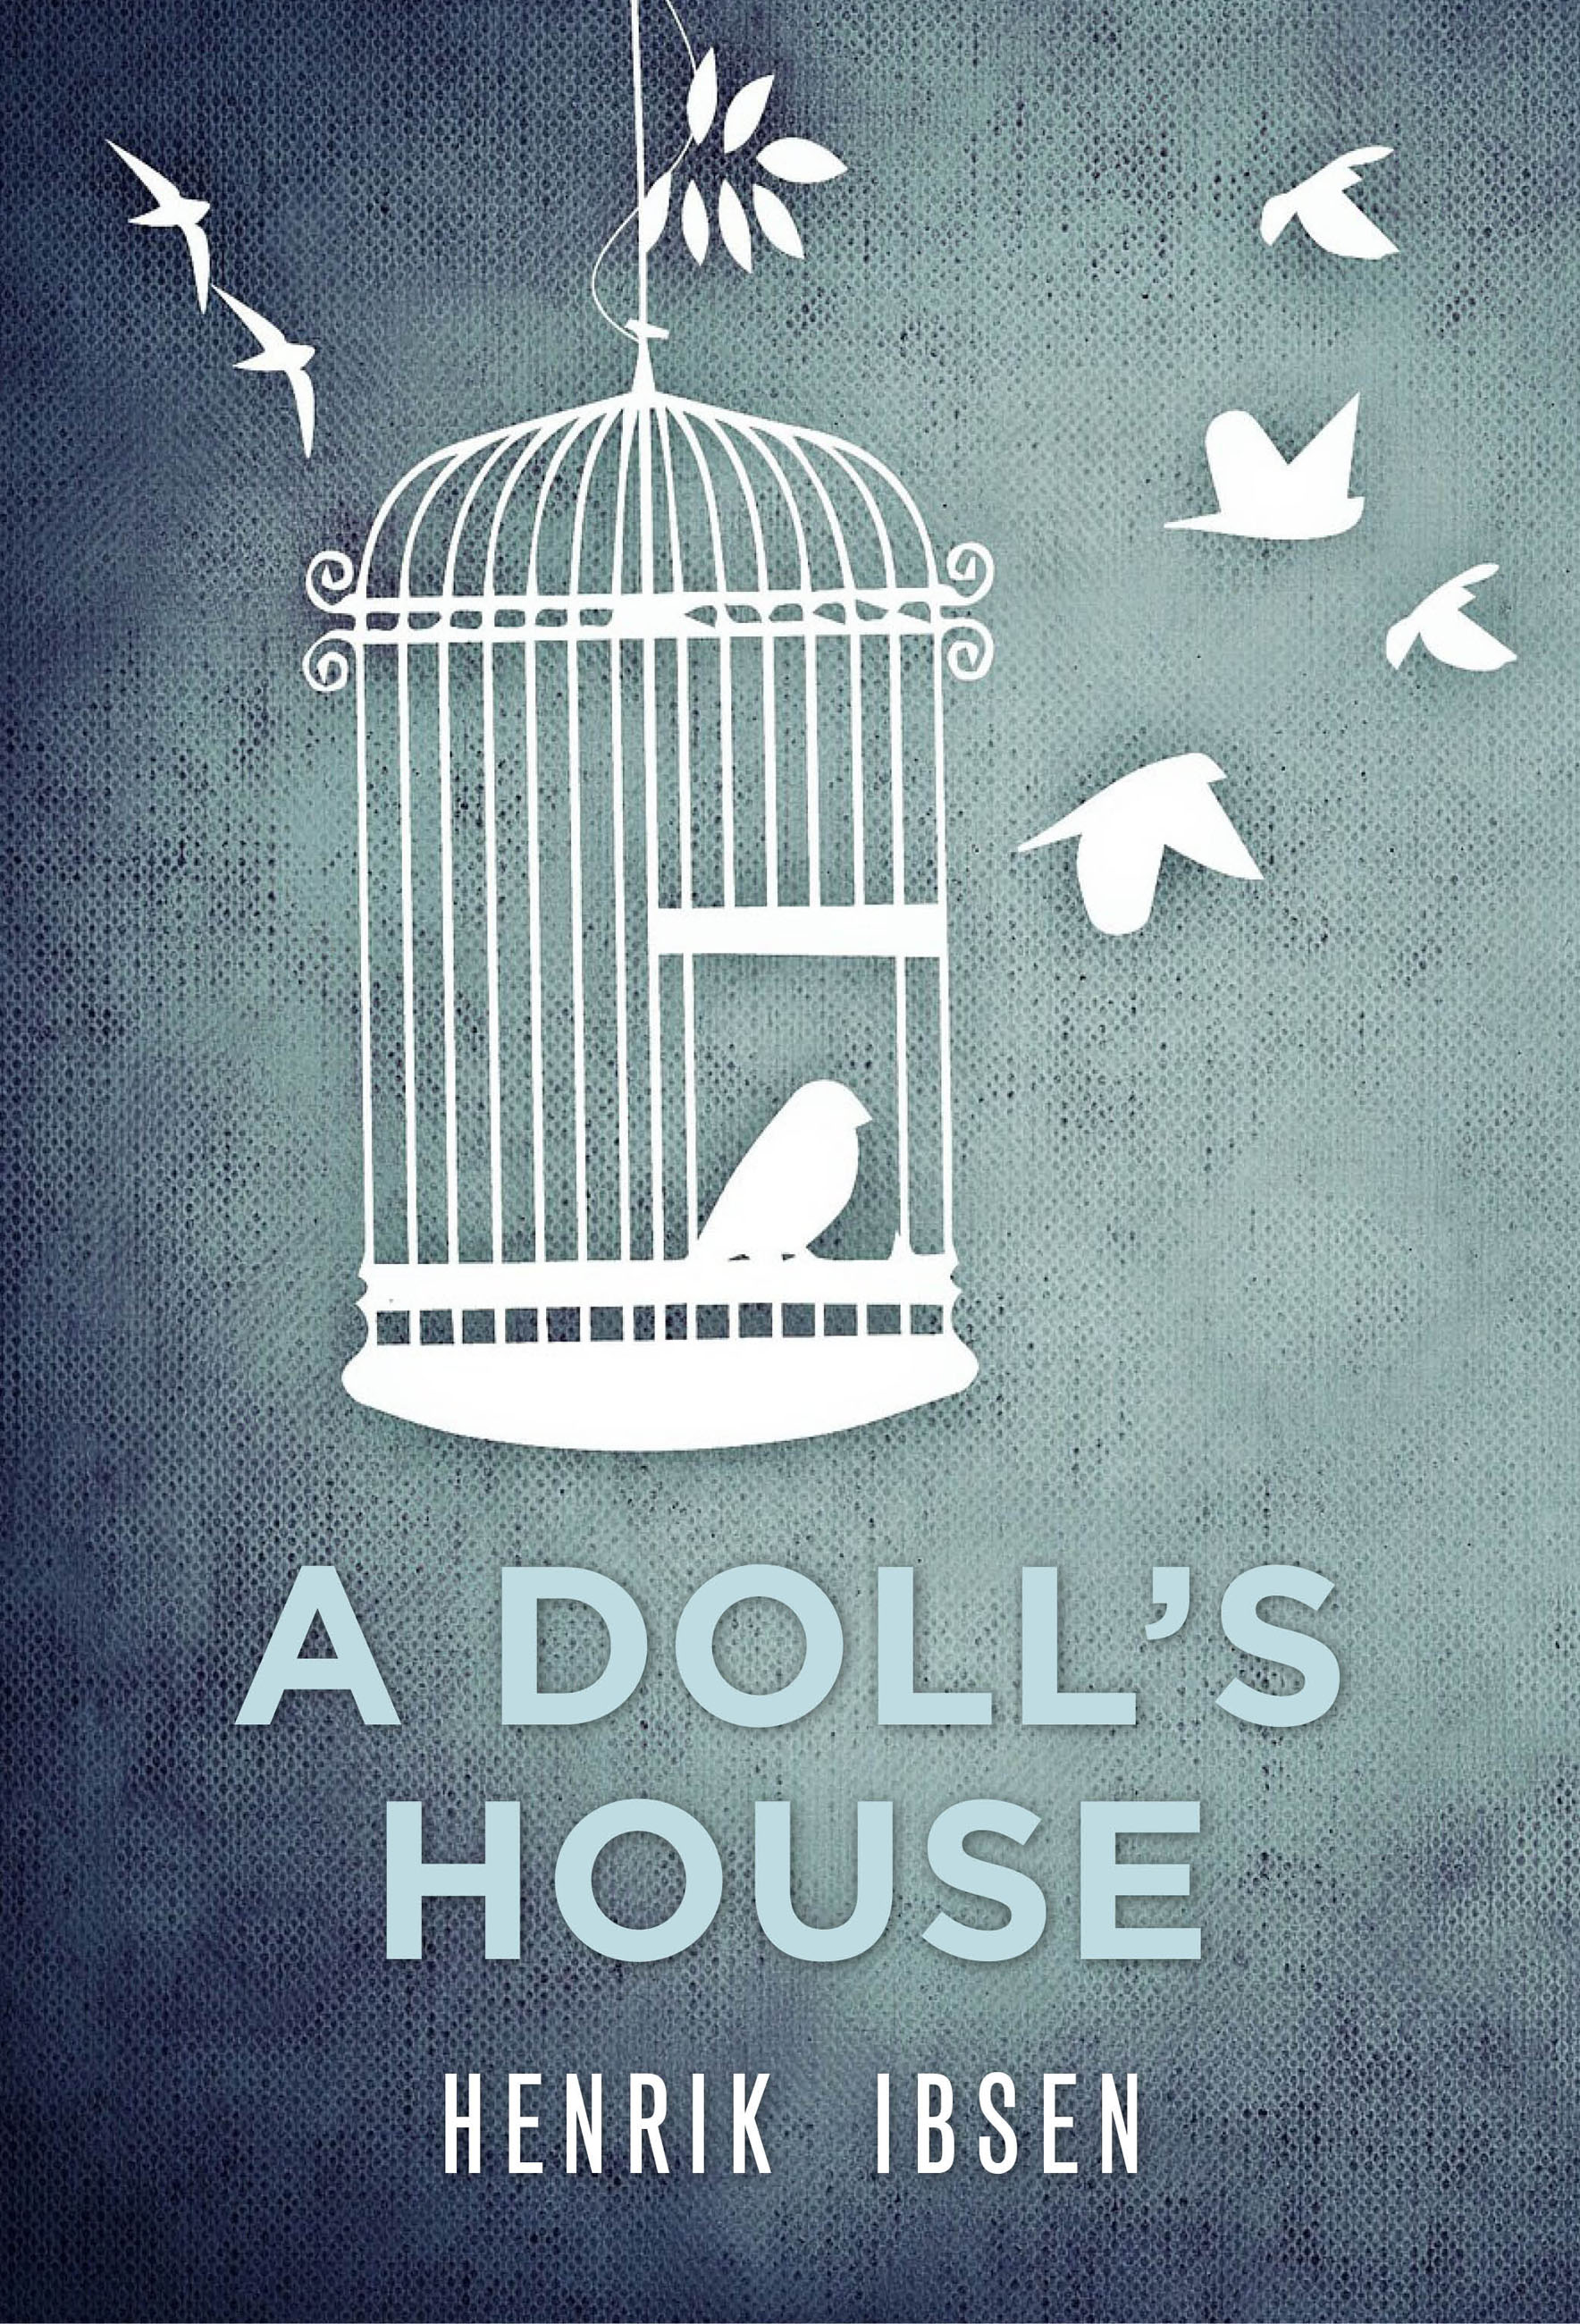 an analysis of the character of torvald in a dolls house by henrik ibsen The play, a doll house, by henrik ibsen is the story of a trouble marriage in victorian society torvald treats his wife, nora, like a trophy until she finally realizes that she is unhappy and leaves him.